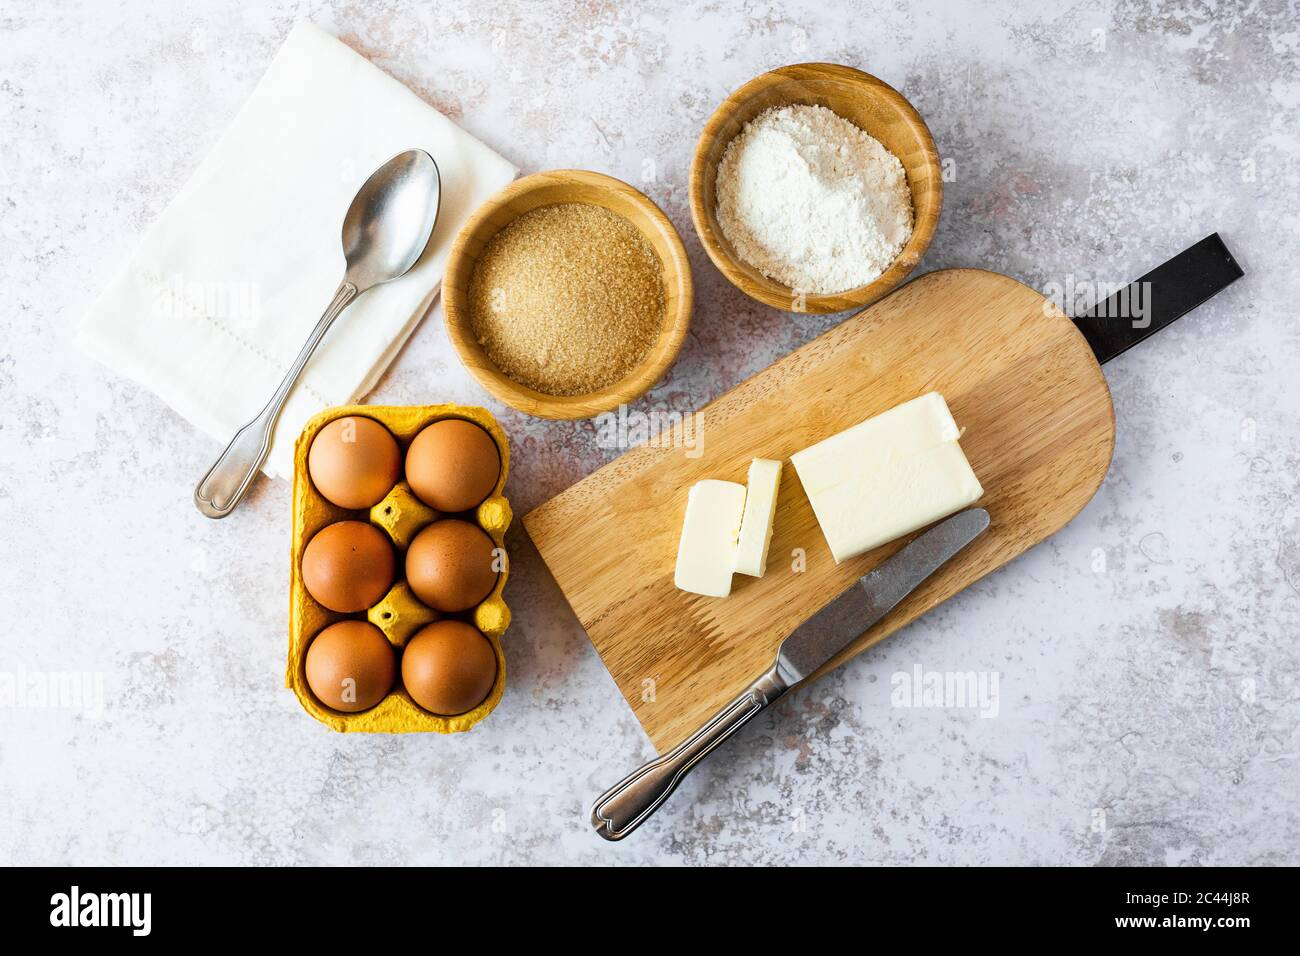 Napkin, spoon, bowls of flour and brown sugar, chicken eggs, cutting board, butter and table knife Stock Photo